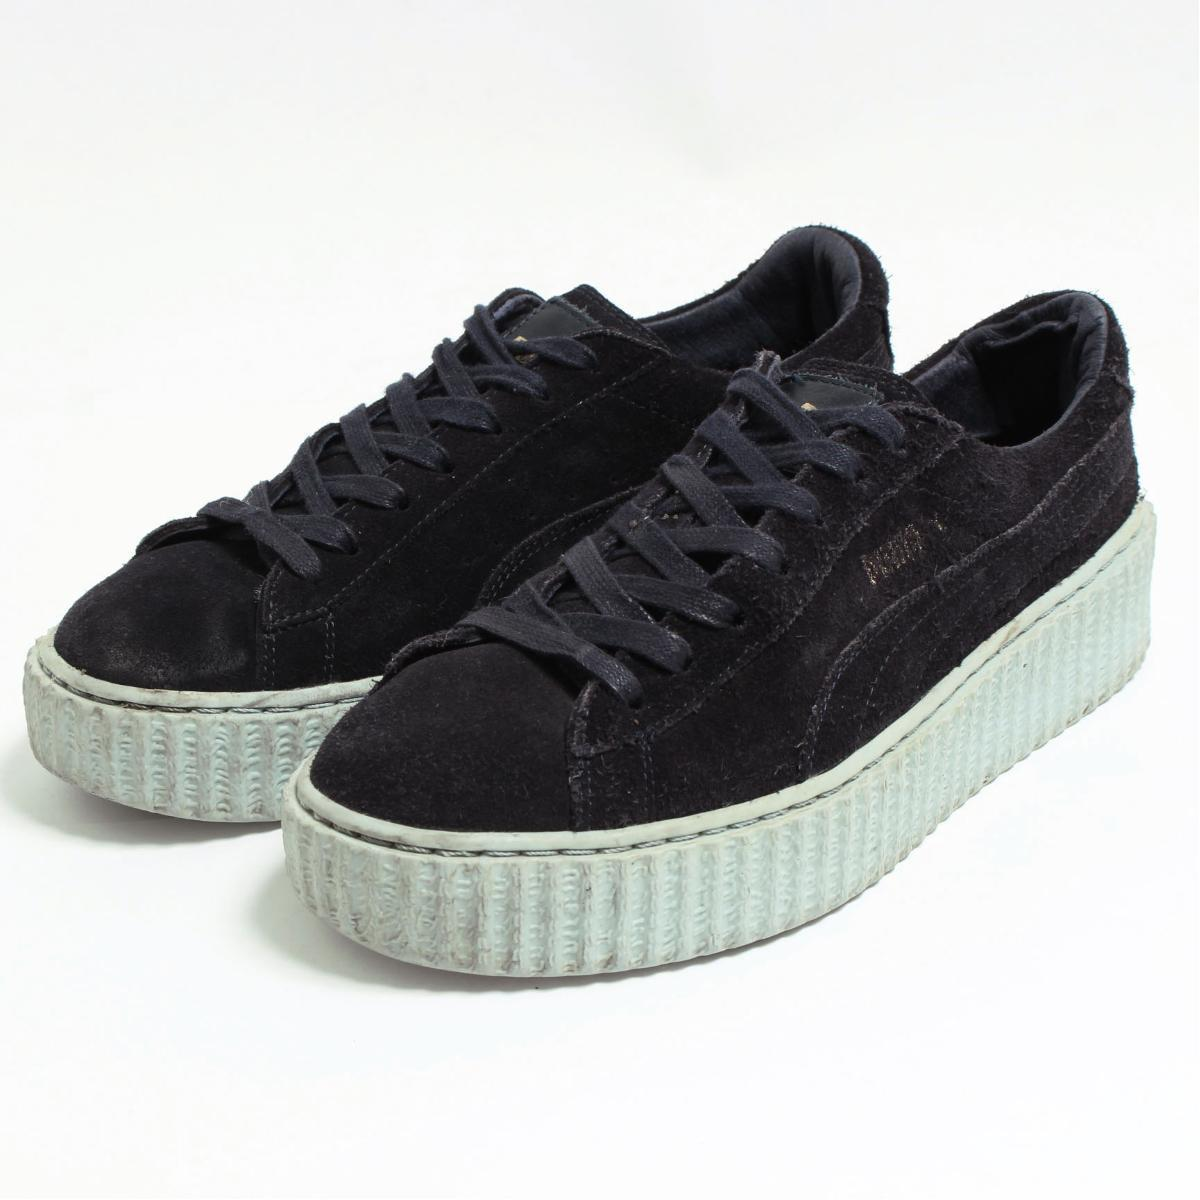 new arrival 9dee0 52007 Puma PUMA X Fenty By Rihanna SUEDE CREEPERS sneakers US8.5 Lady's 25.0cm  /boo7514